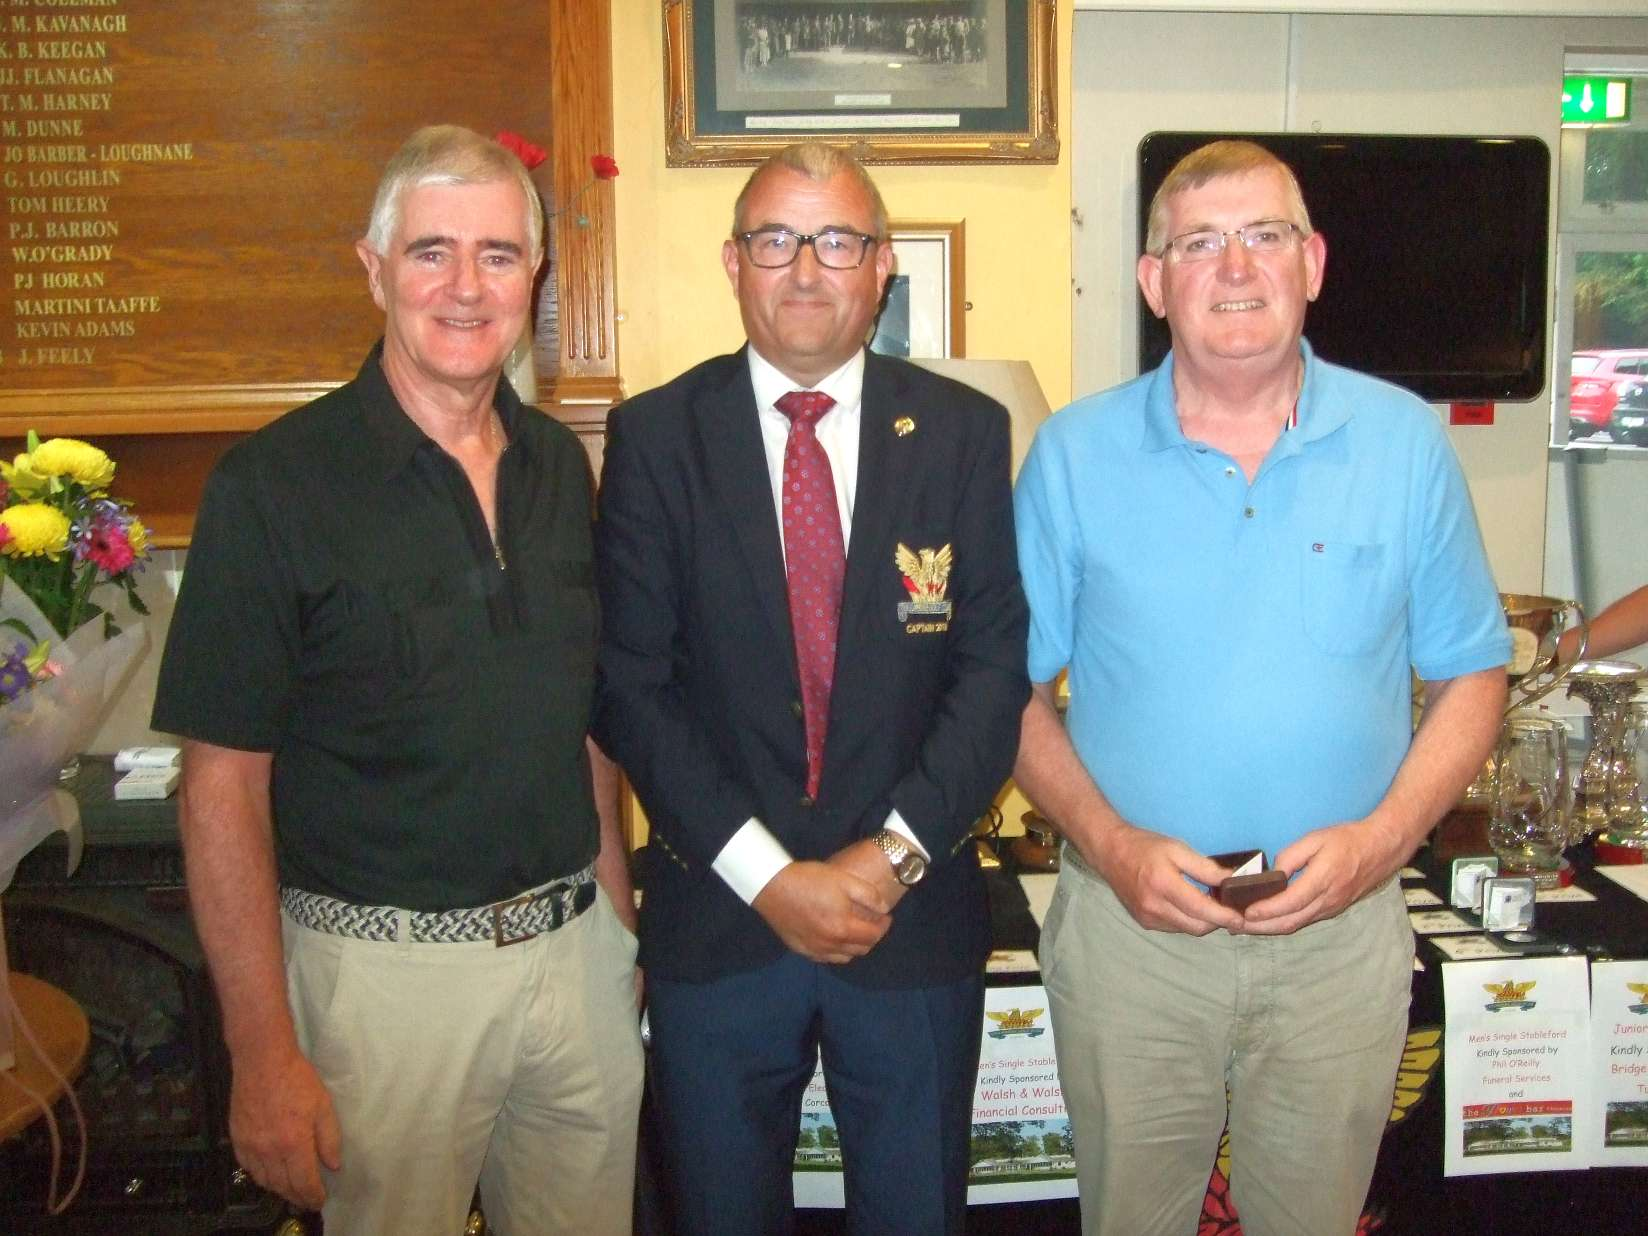 John Cantwell 2nd in the Walsh & Walsh Financial Consulting prize with Tom Walsh and Captain Brian Gunning